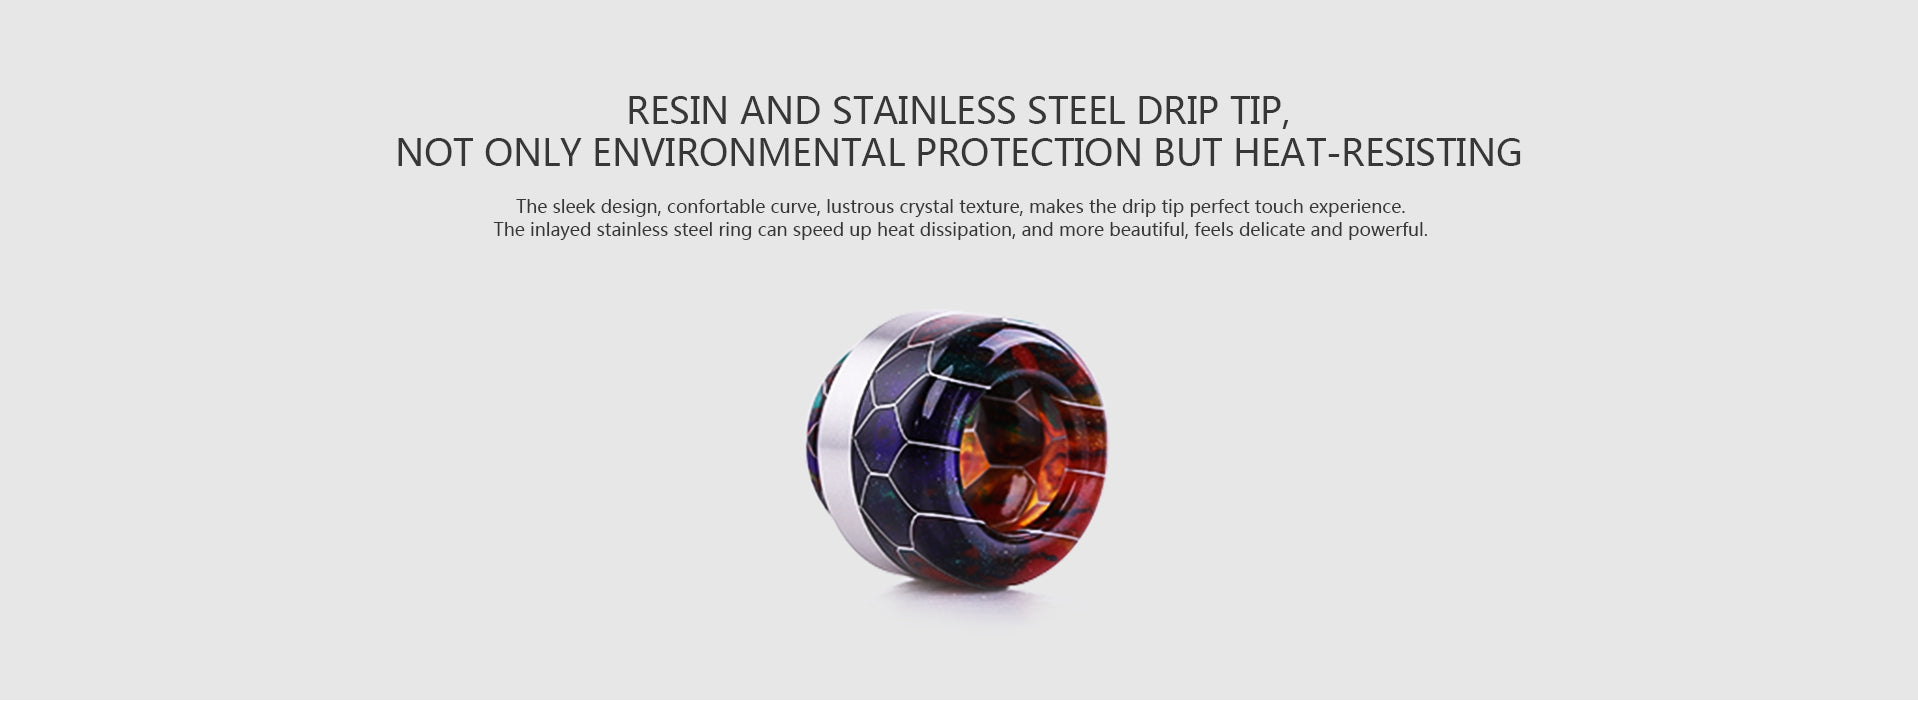 Resin and Stainless steel drip tip,not only environmental protection but heat-resistingThe sleek design, confortable curve, lustrous crystal texture, makes the drip tip perfect touch experience.The inlayed stainless steel ring can speed up heat dissipation, and more beautiful, feels delicate and powerful.